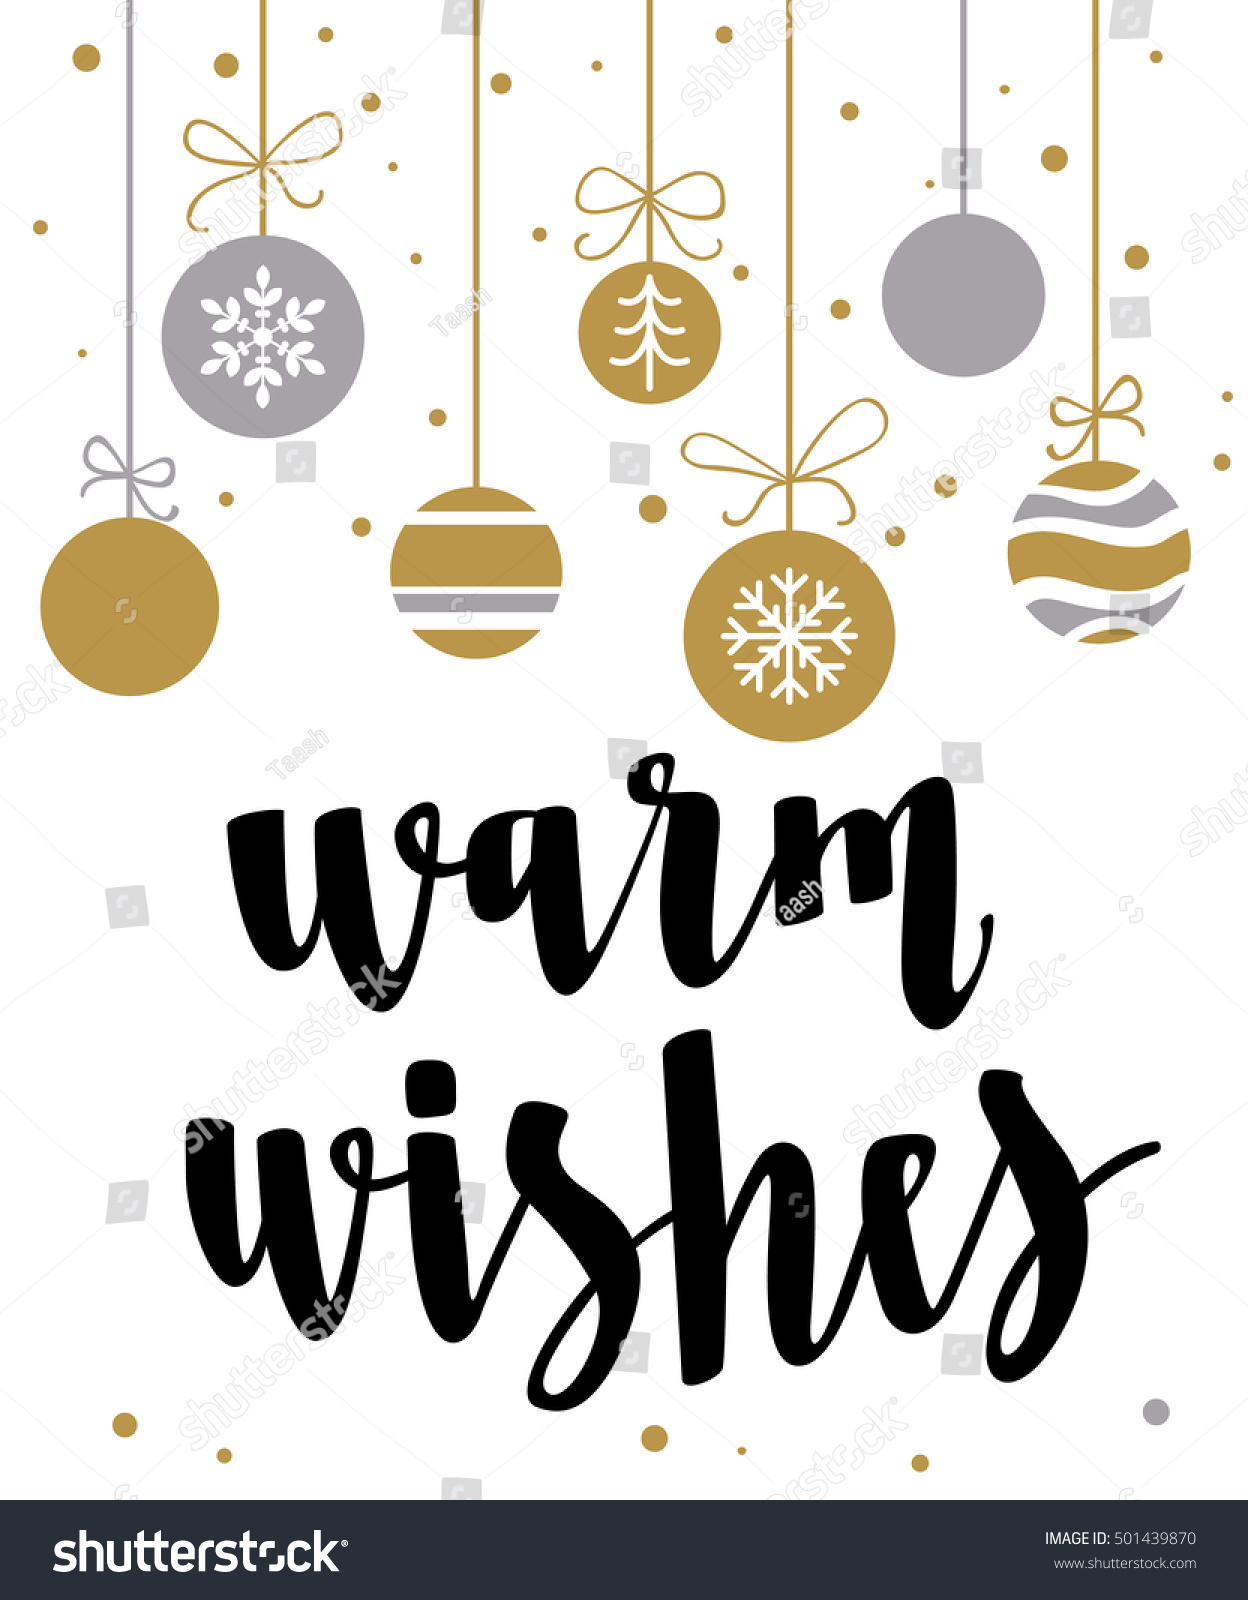 Warm Wishes Holiday Greeting Card Calligraphy Stock Vector 501439870 - Shutterstock